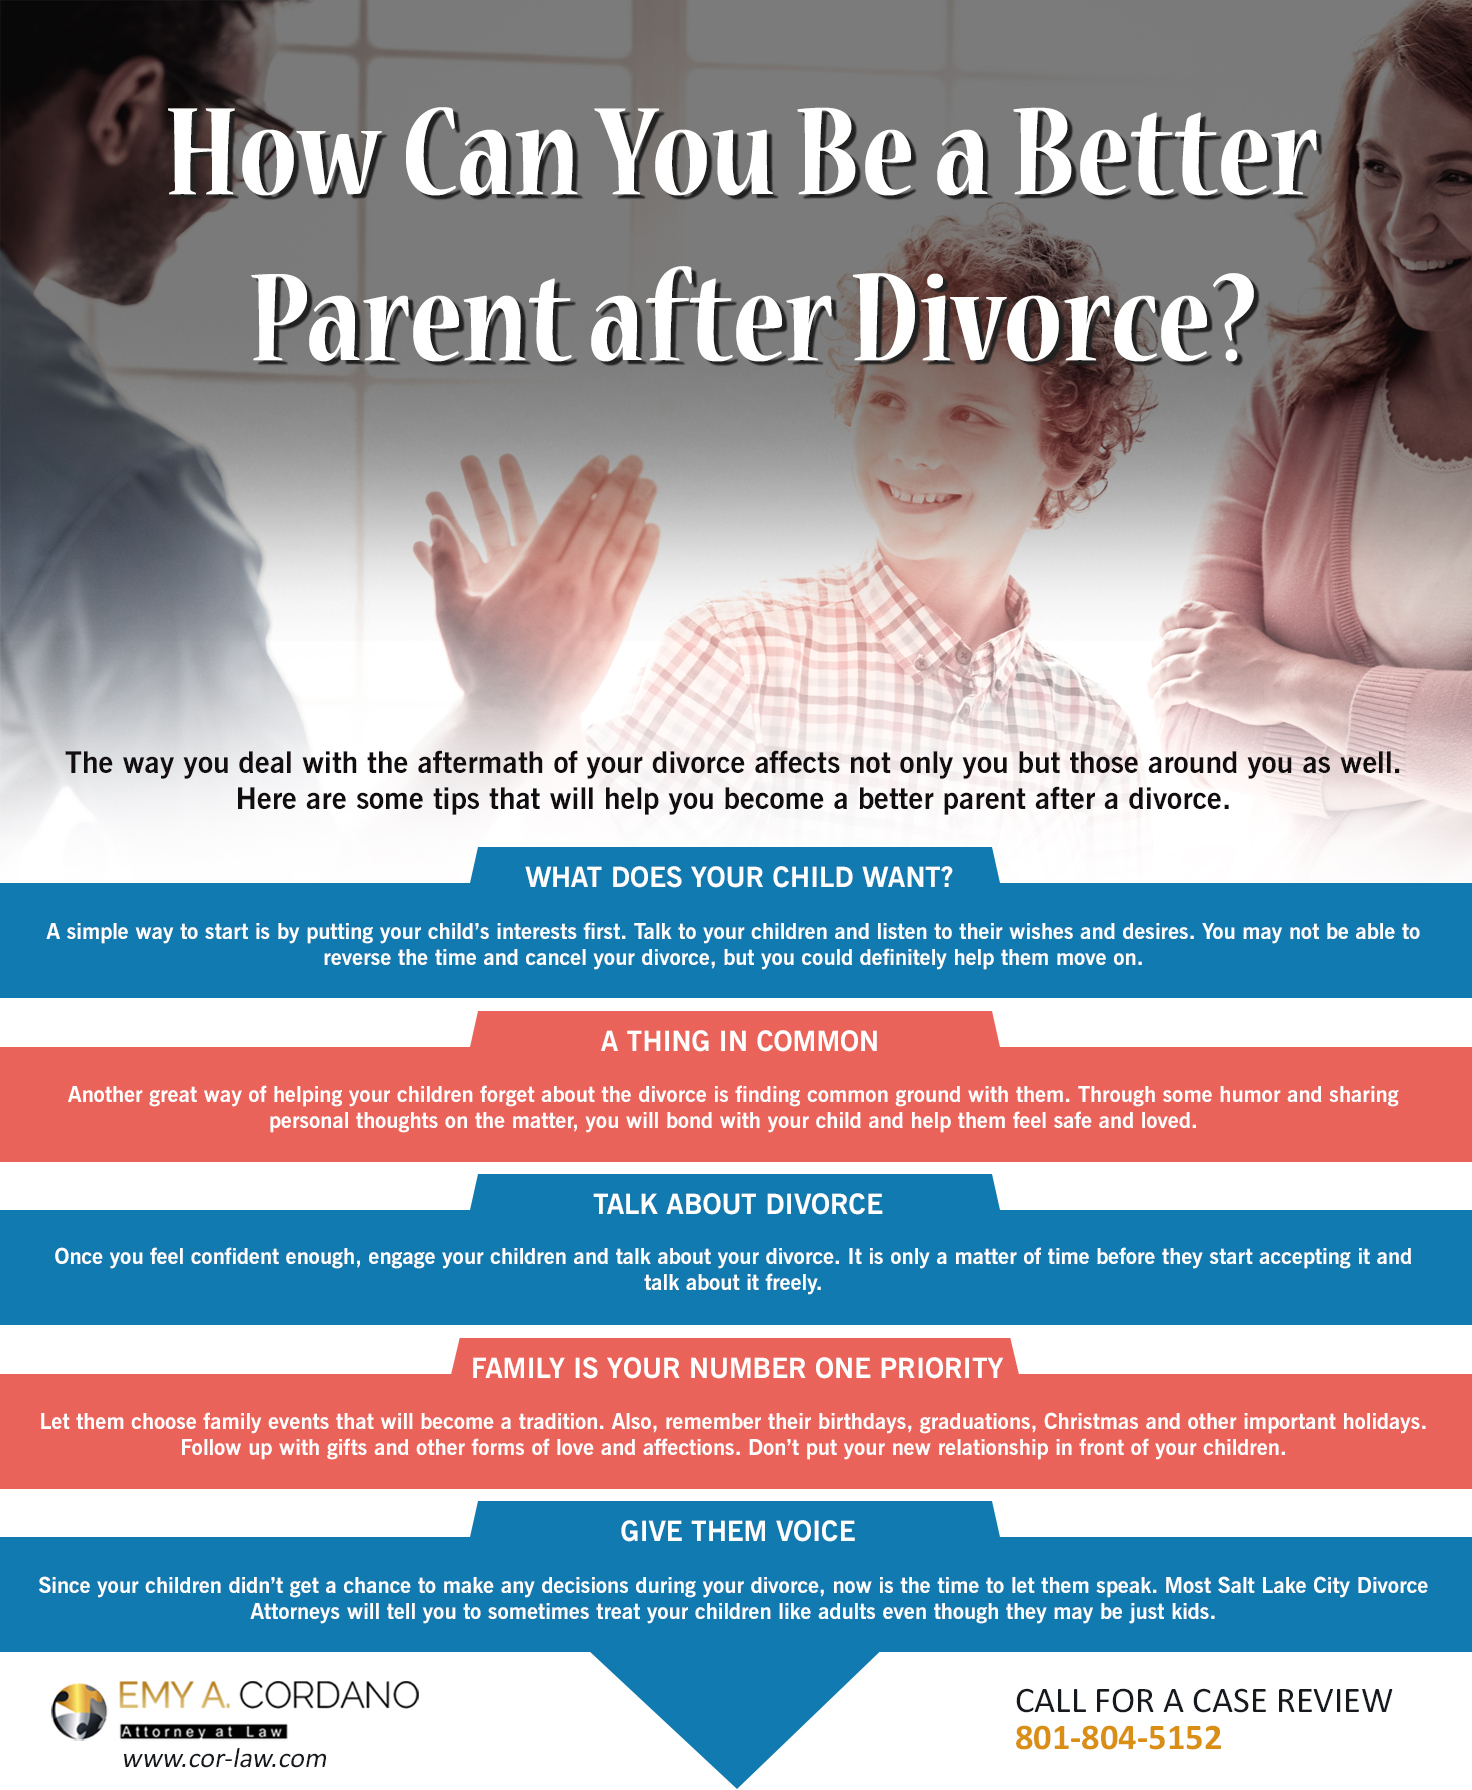 How Can You Be a Better Parent after Divorce?